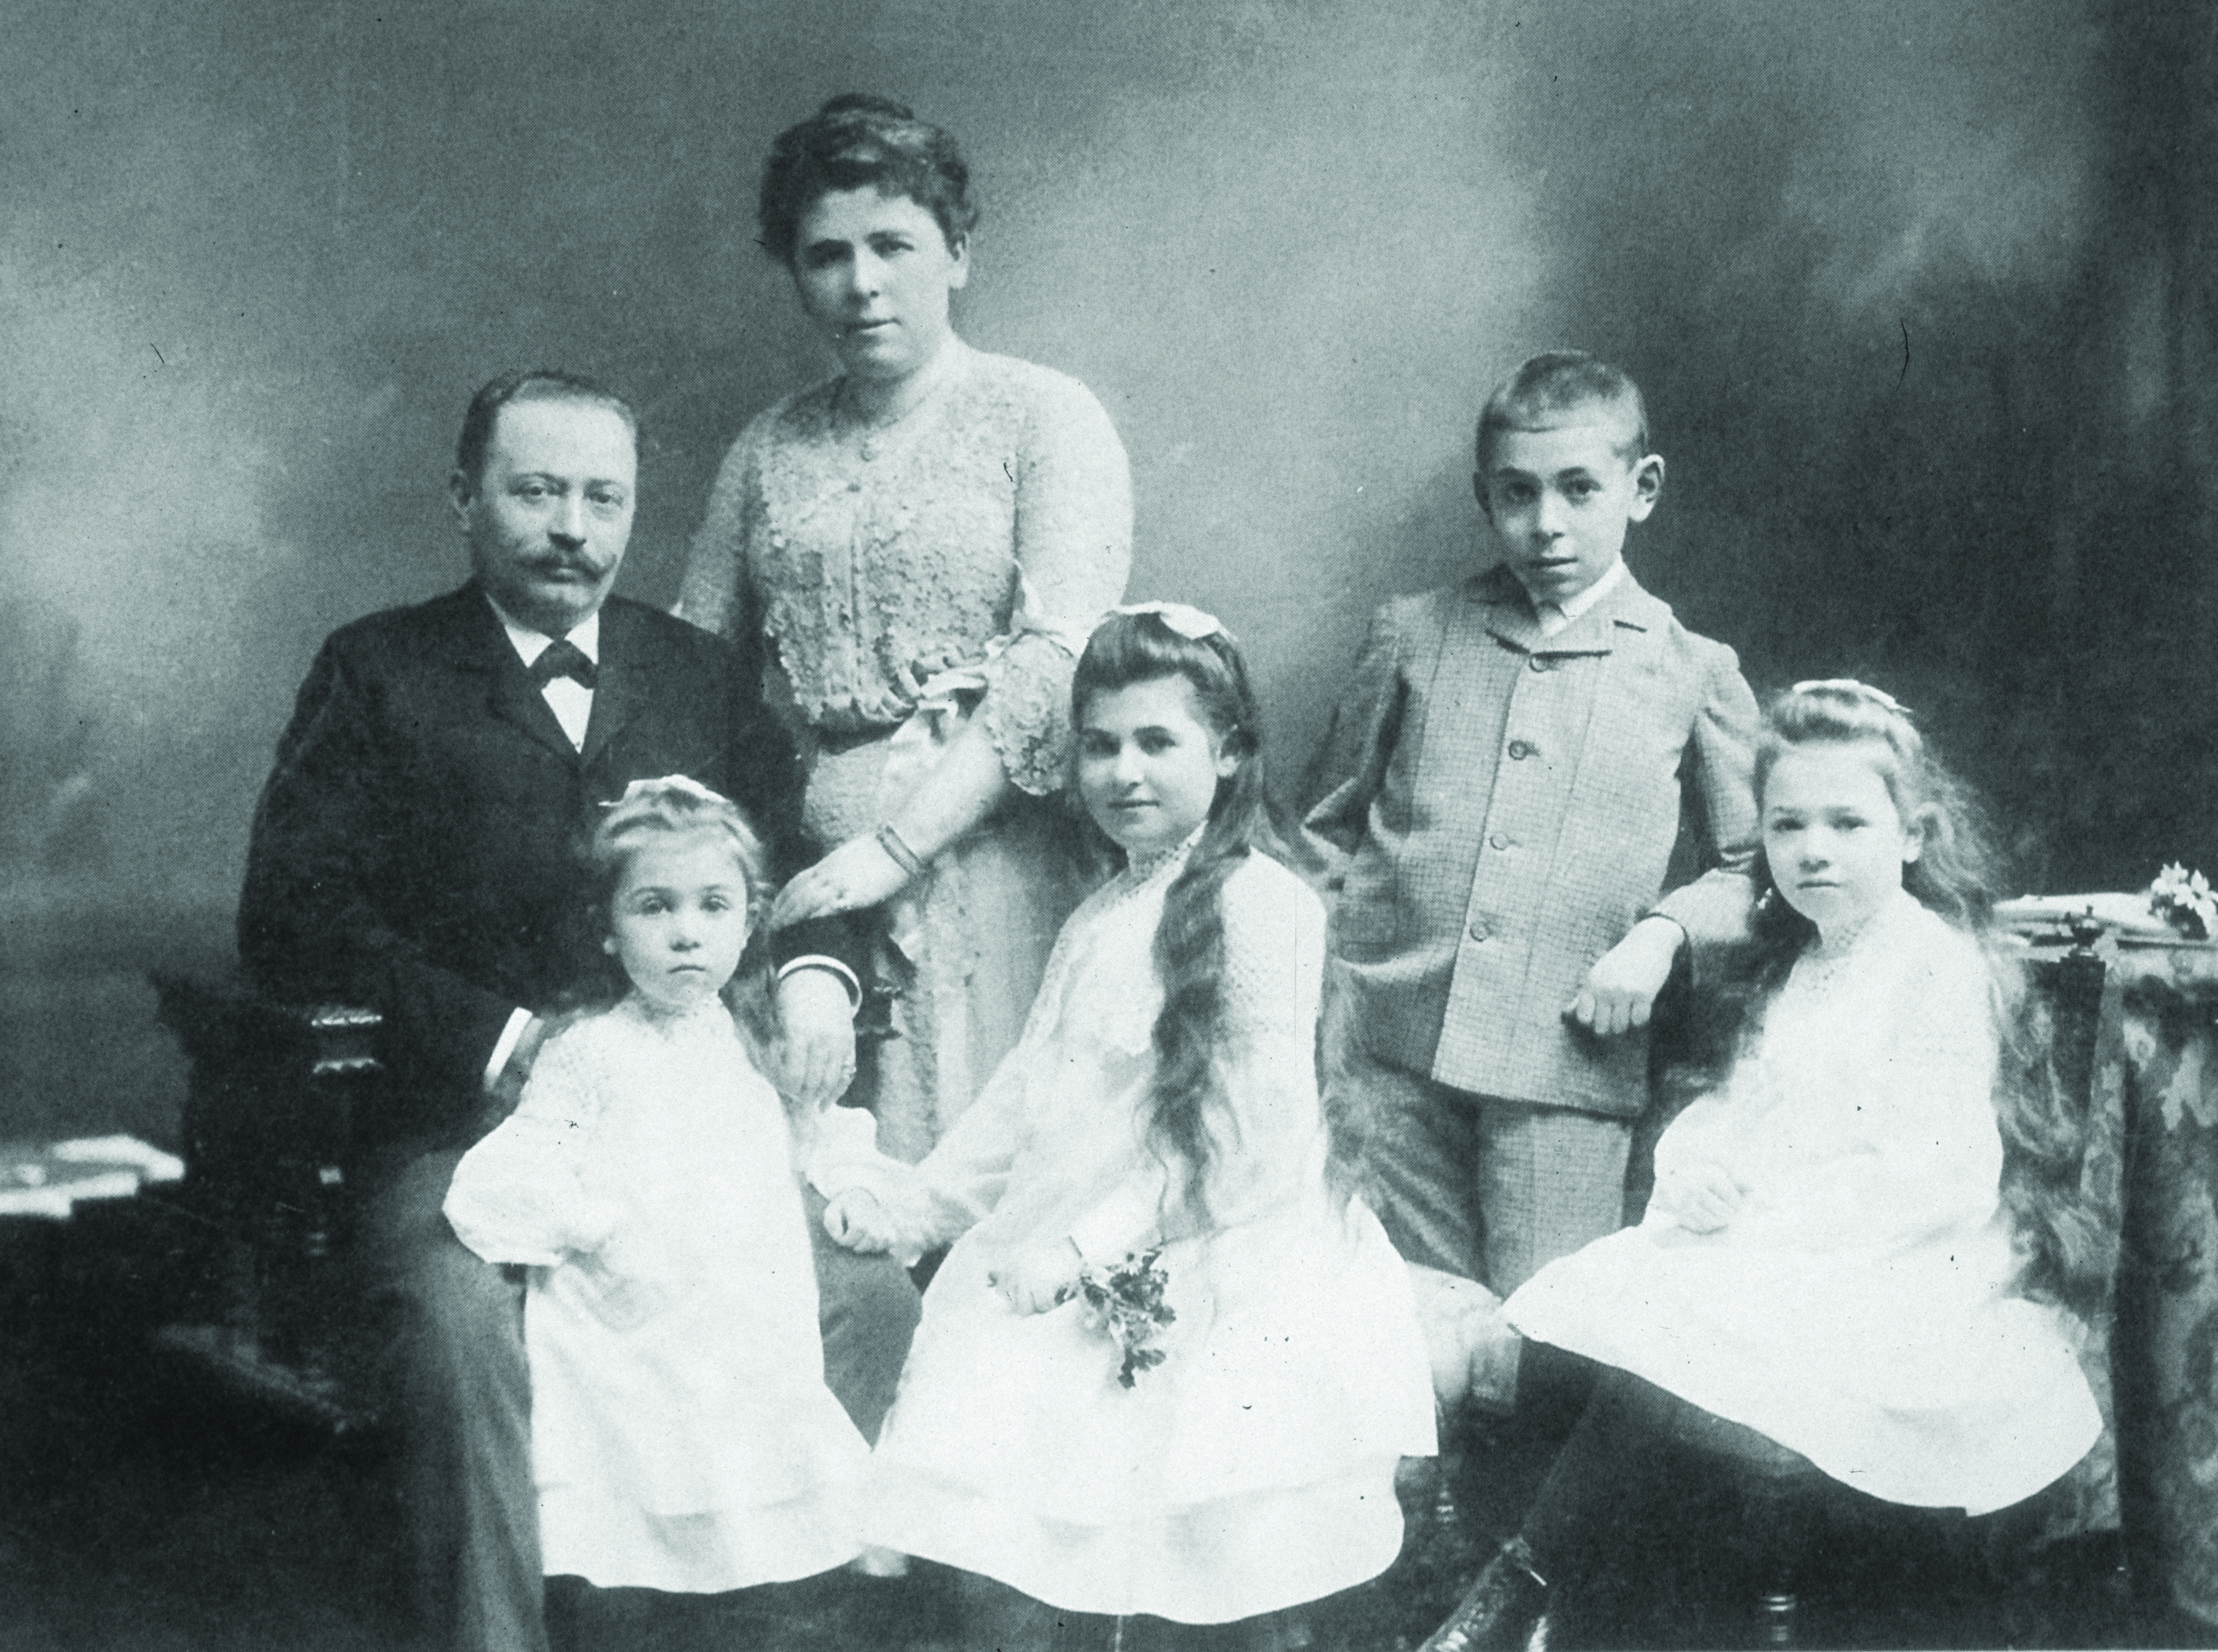 Edith's maternal grandparents, mother, aunts, and uncle